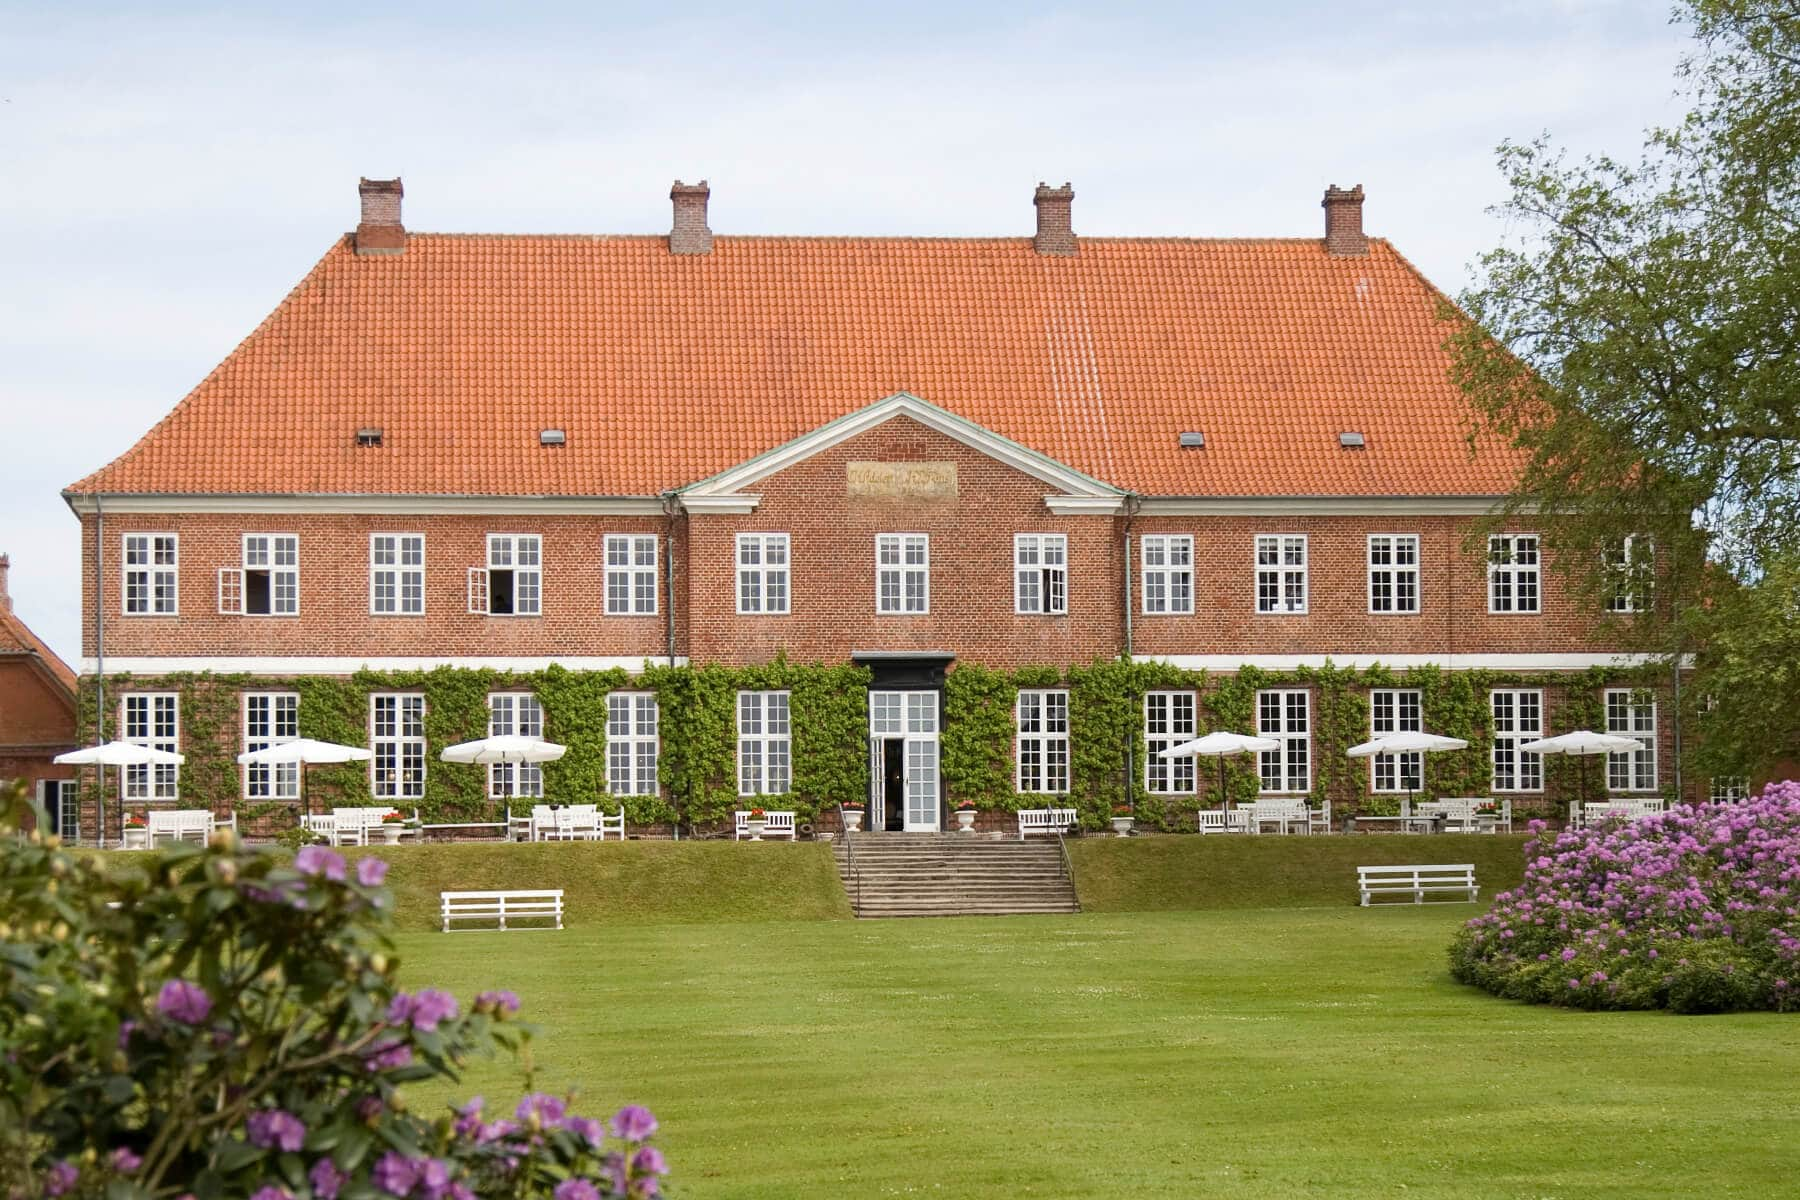 Hindsgavl Castle Hotel on Funen - The perfect place to stay in Denmark